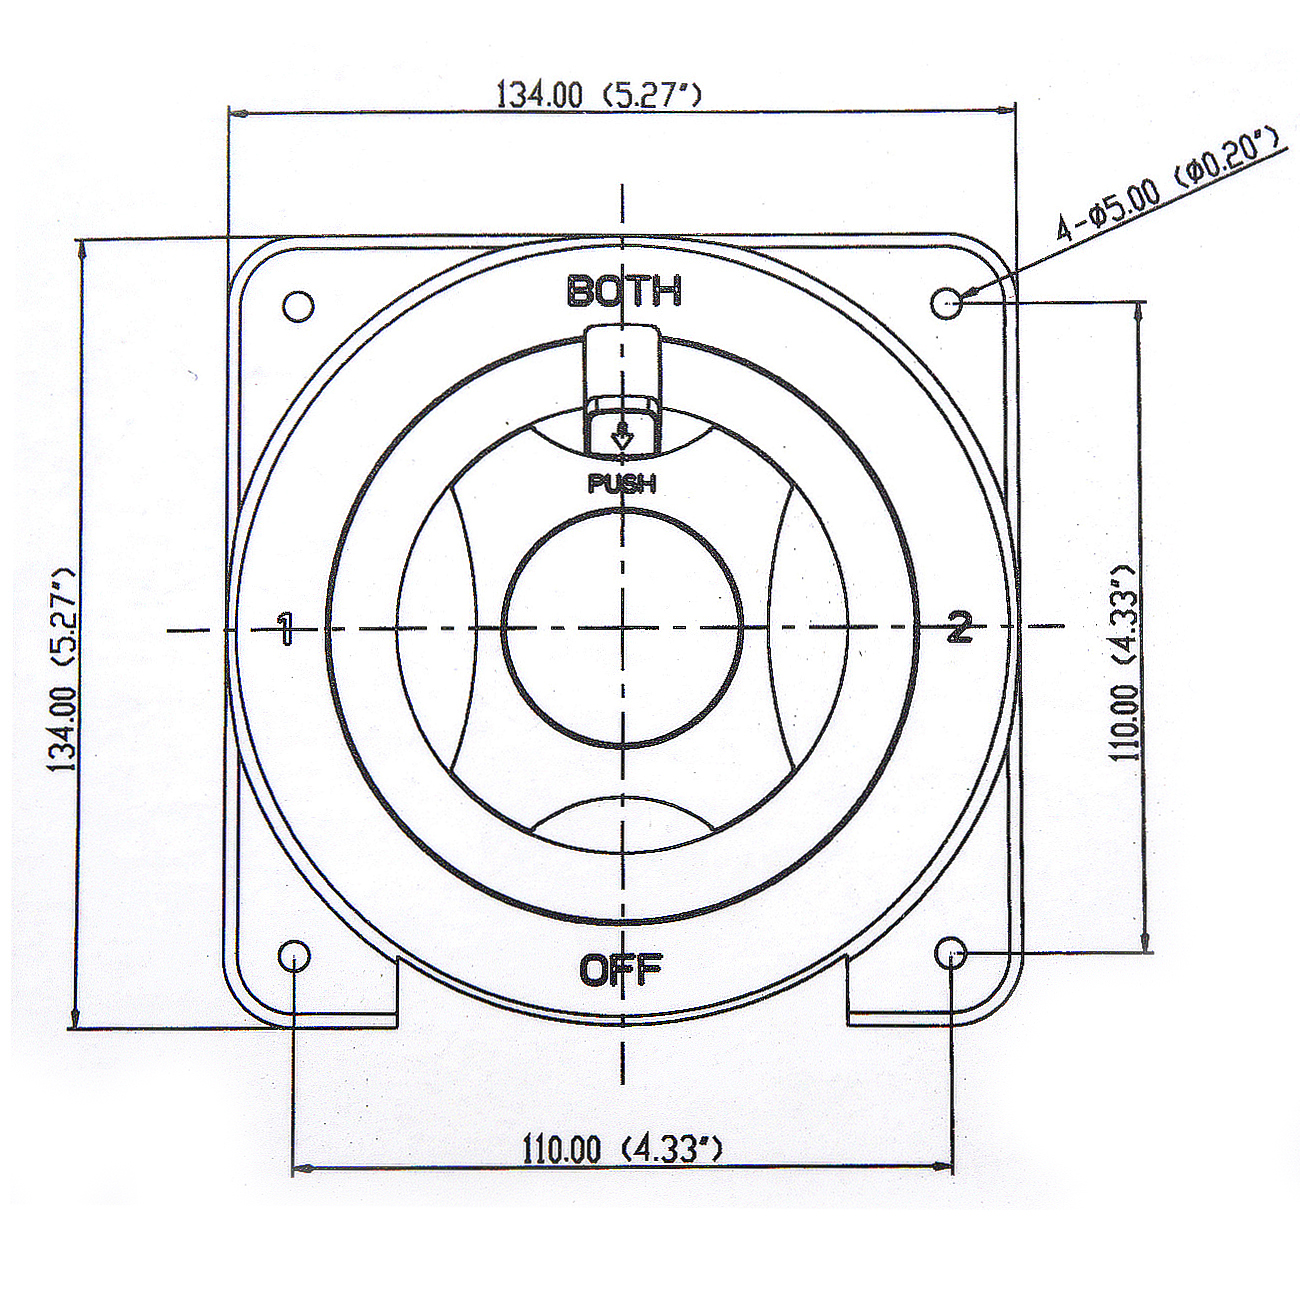 hight resolution of dual marine battery switch selector for rv boat replaces guest perko 4 position